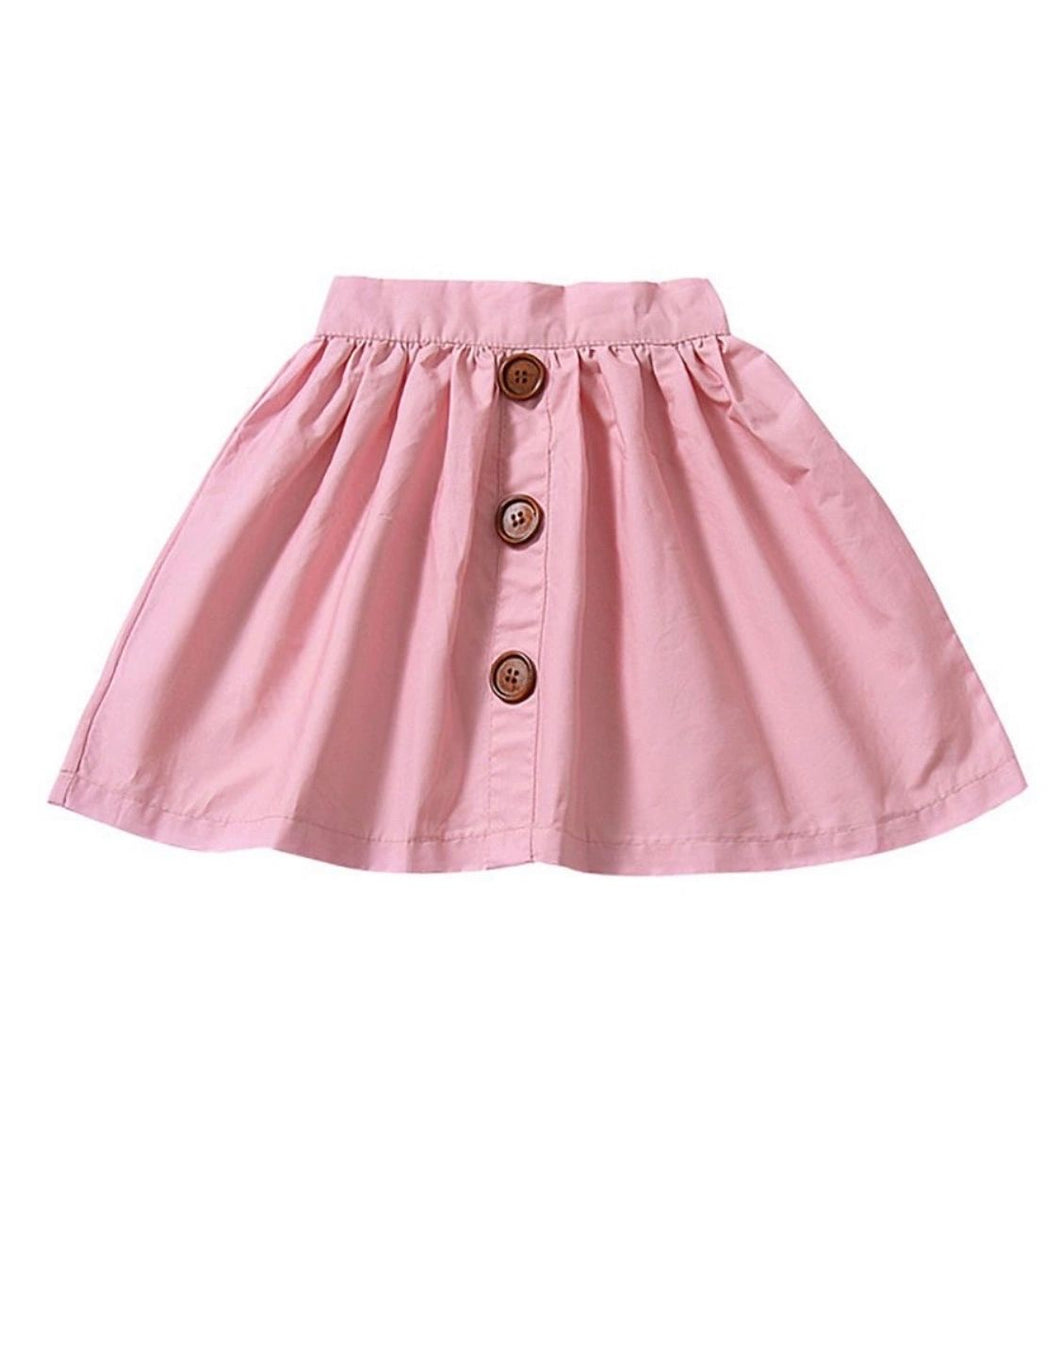 High waisted skirt- pink